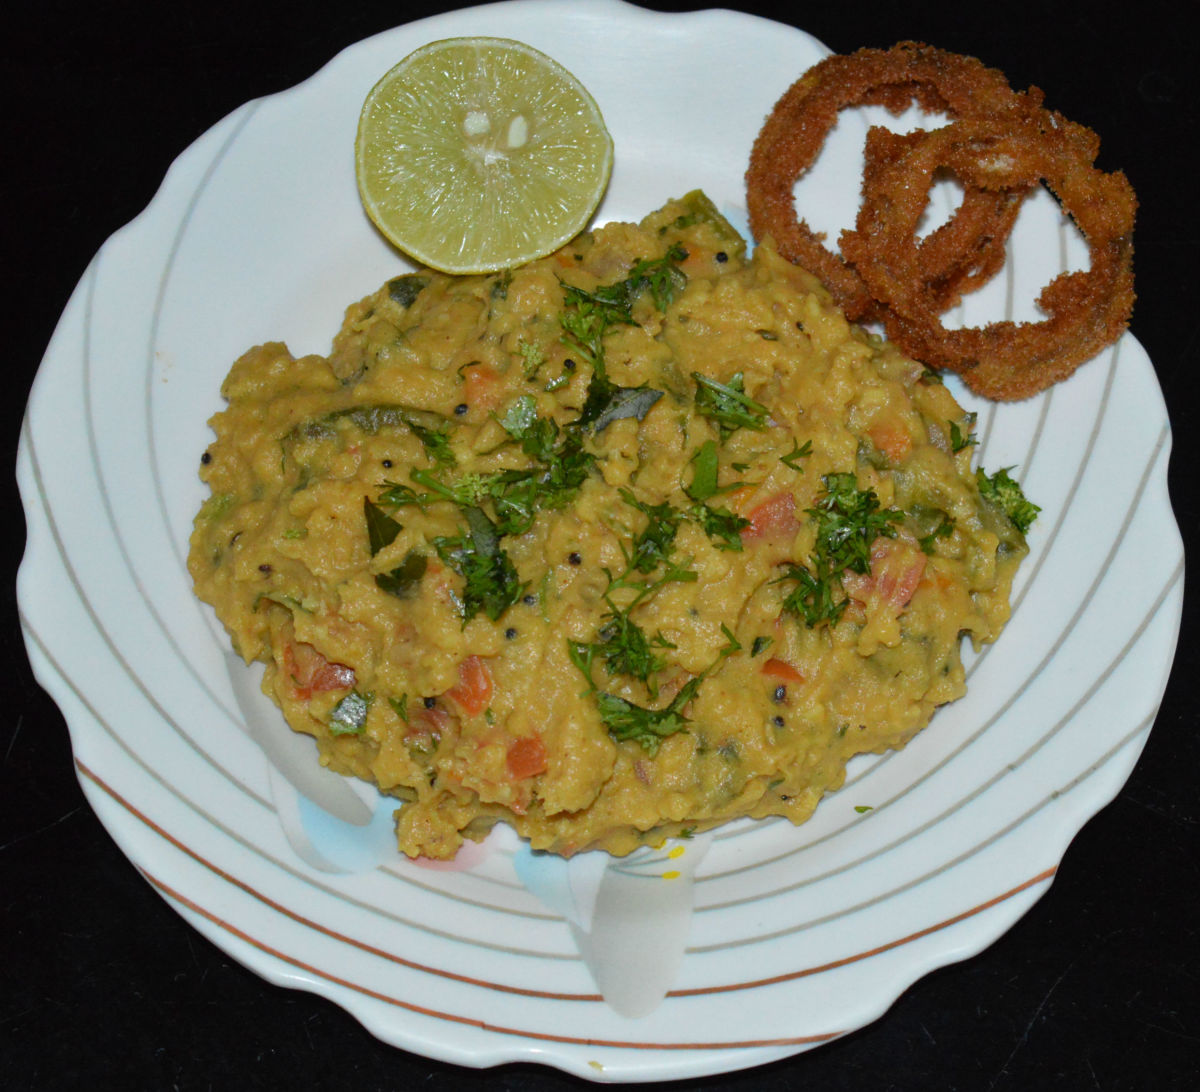 Your favorite cornmeal upma is ready! serve it hot as is or top it with some fried tidbits. Enjoy the taste!